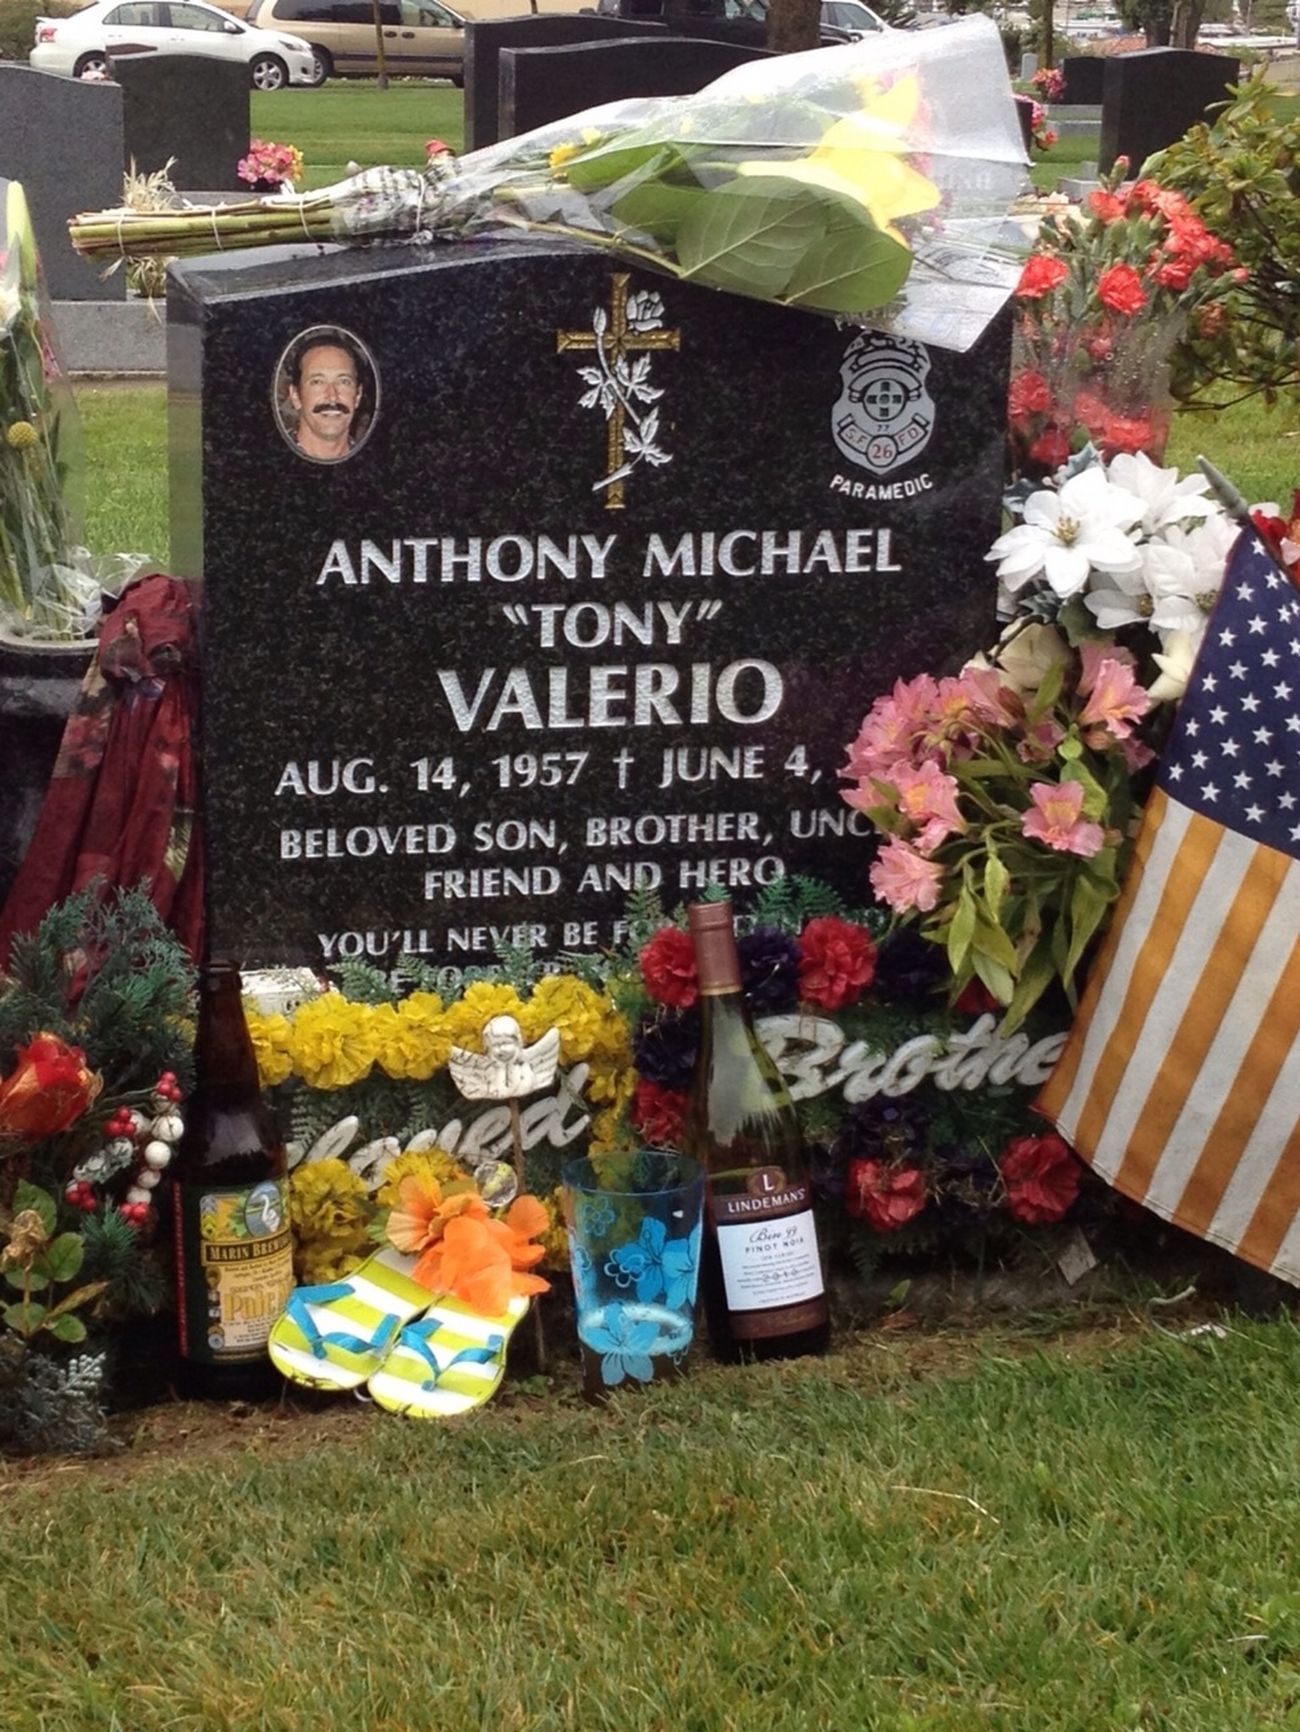 Paying My Respects Mahalo The Press - Treasure Love To My Treasured Brother